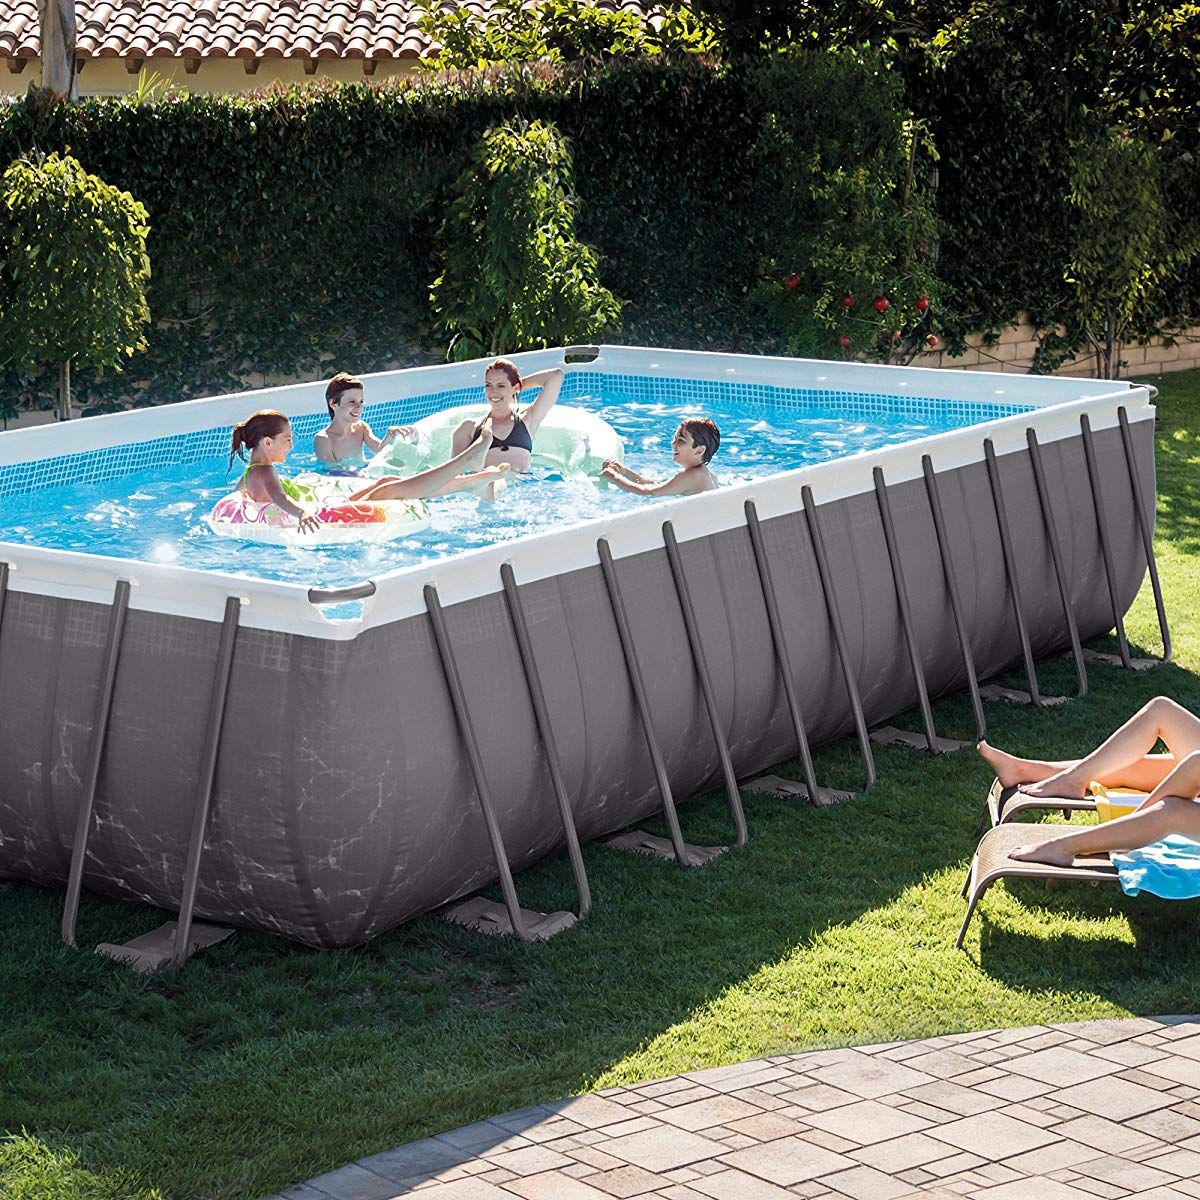 Intex 24 Foot By 12 Foot By 52 Inch Rectangular Ultra Frame Pool Rectangular Pool Rectangle Pool Above Ground Swimming Pools